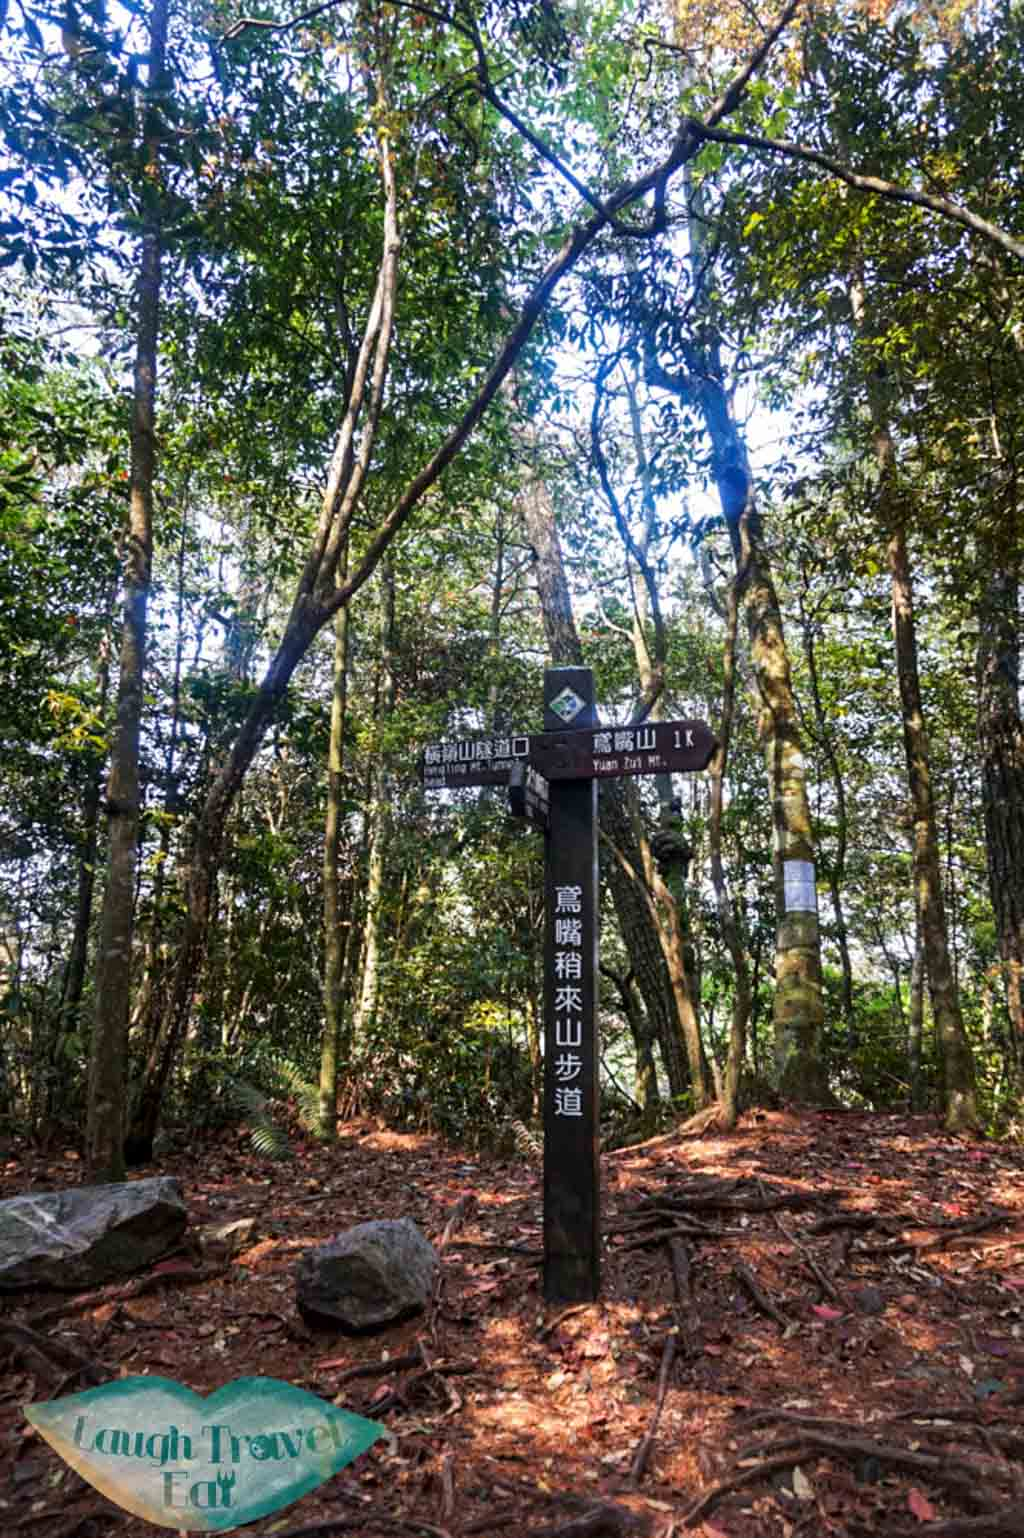 Follow the sign to the right towards Yuan Zui Mountain (1km to go!) at Dasyueshan National Forest Recreational Area - Laugh Travel Eat